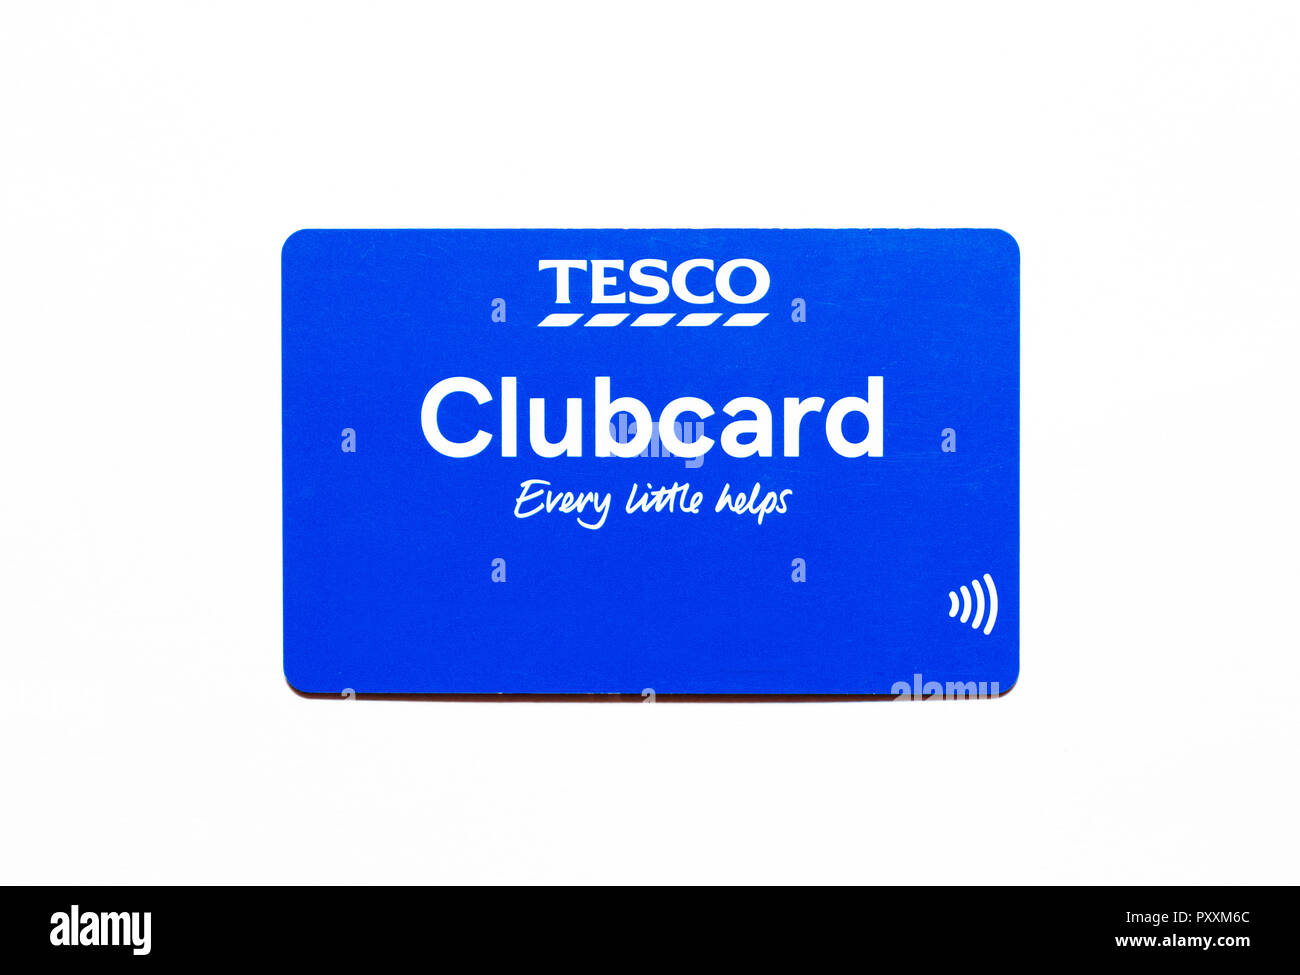 tesco store card clubcard - Stock Image